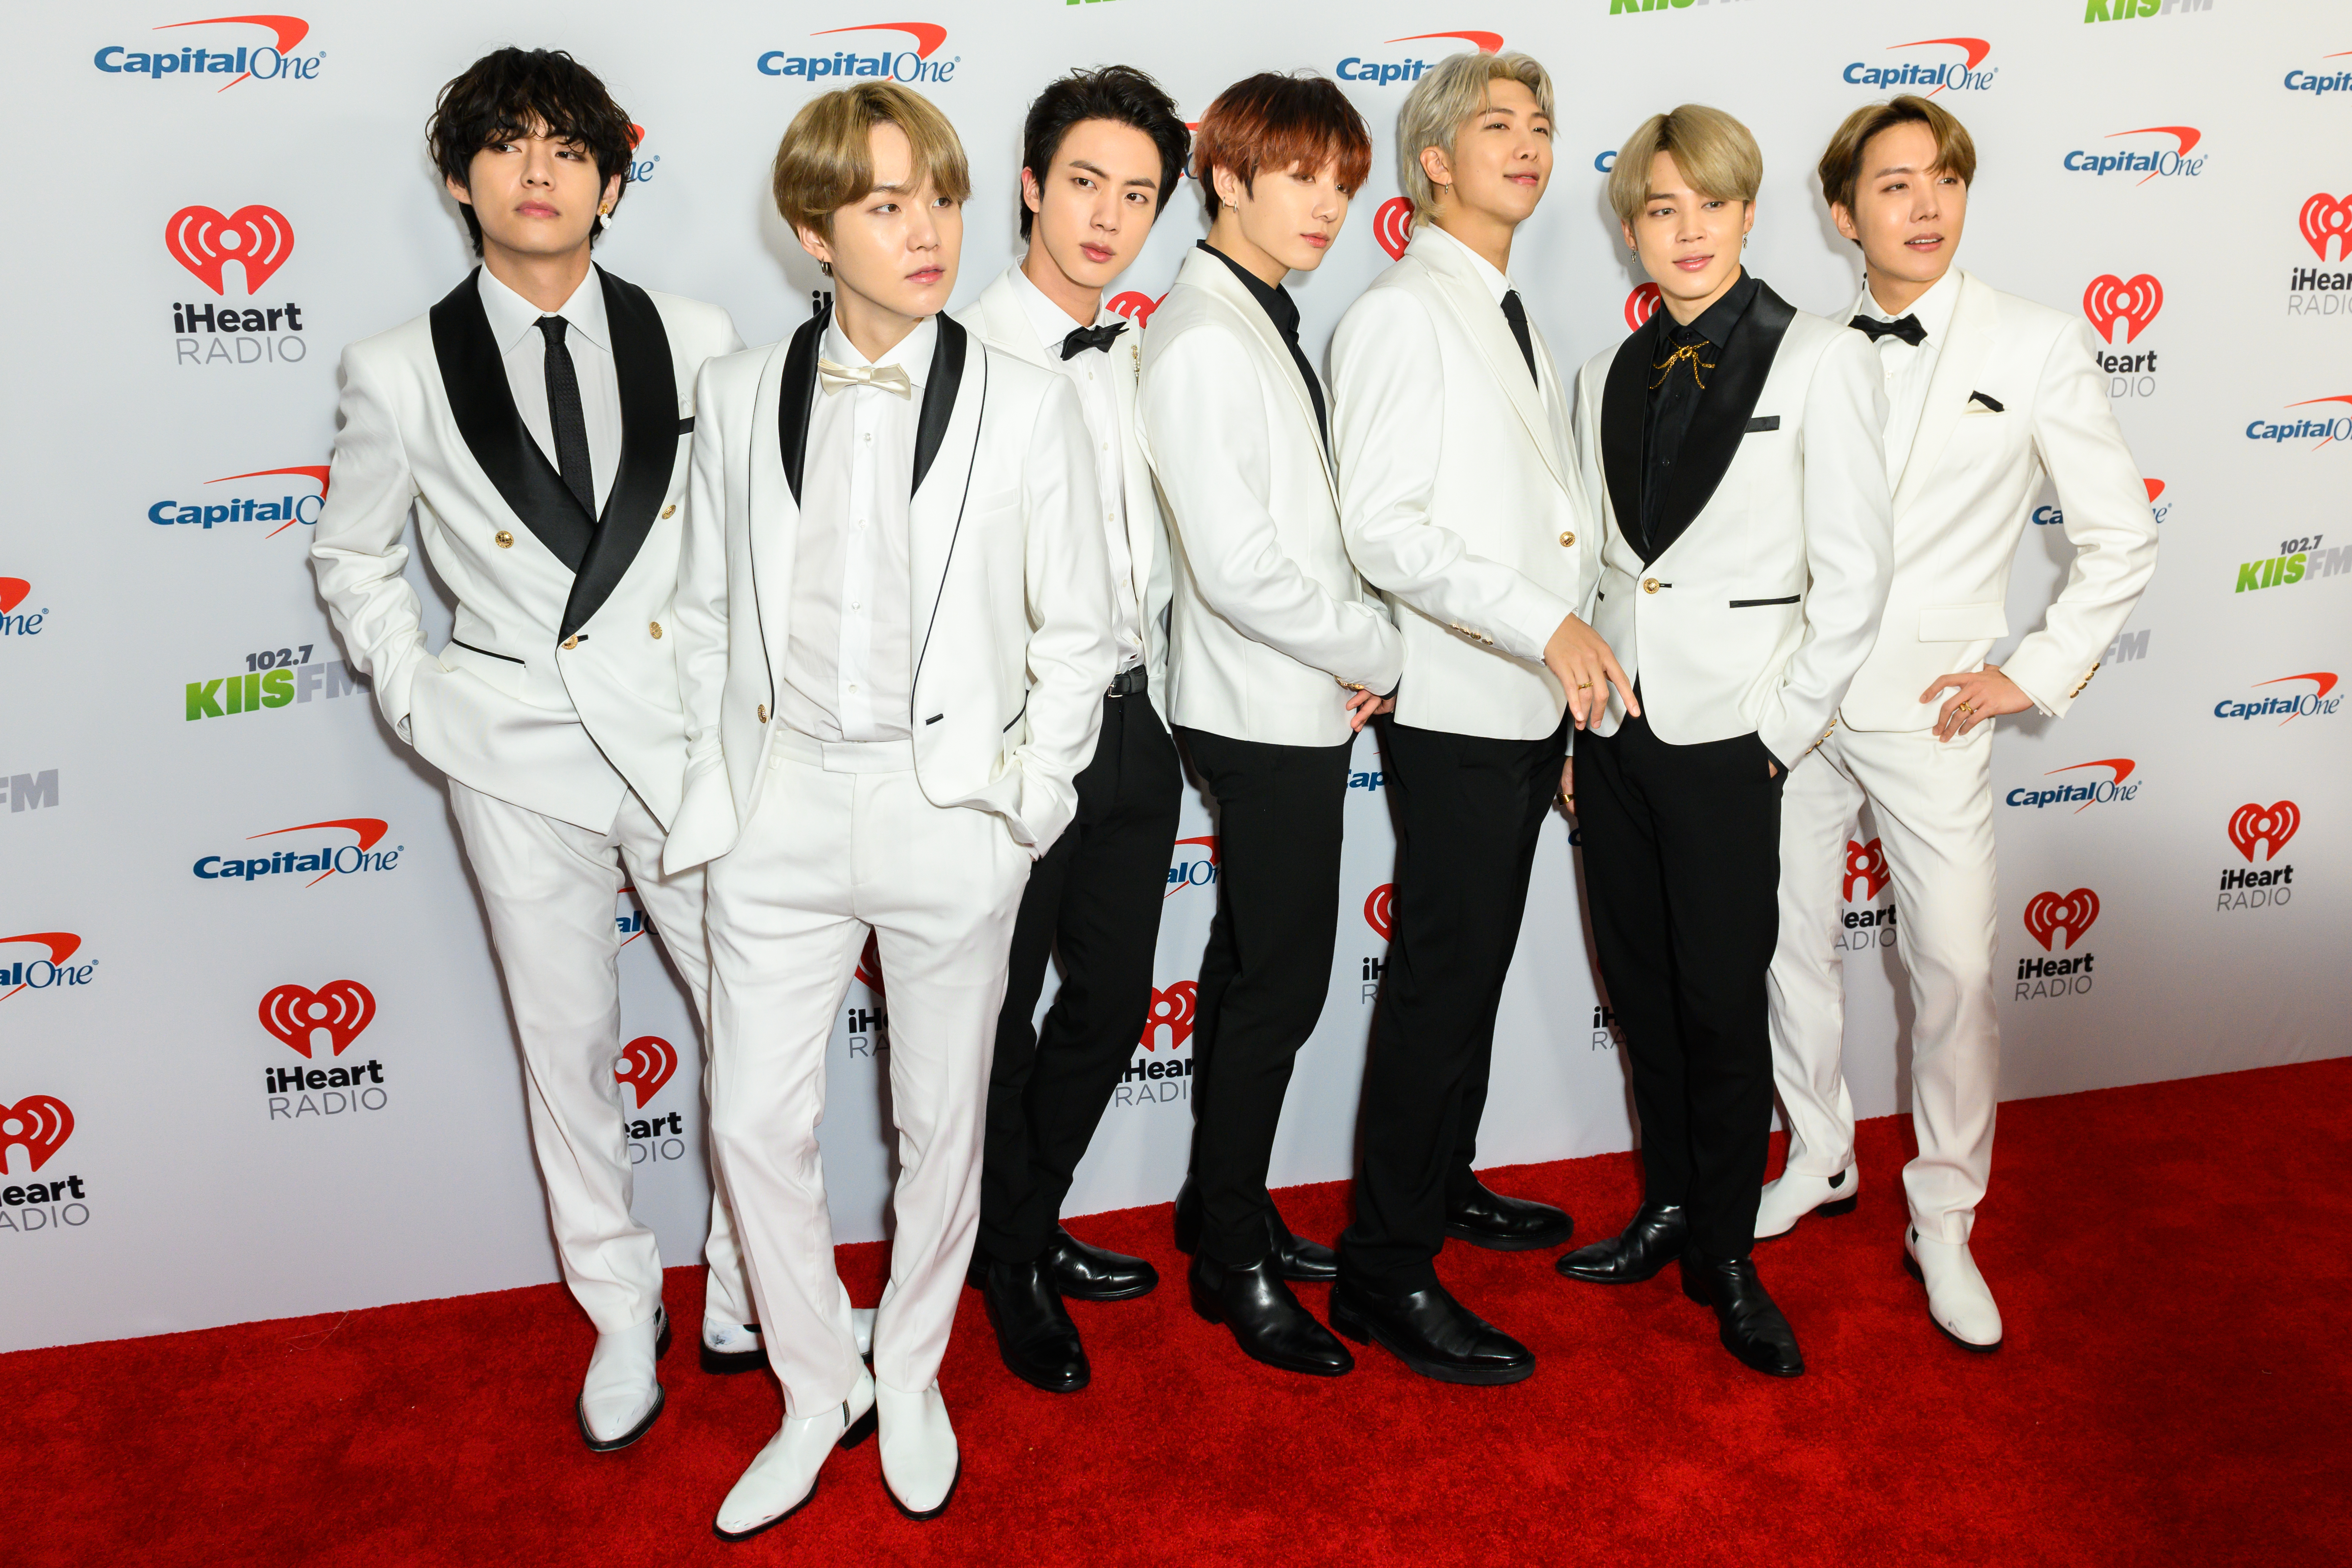 All seven members of BTS dressed in white suits on the red carpet.